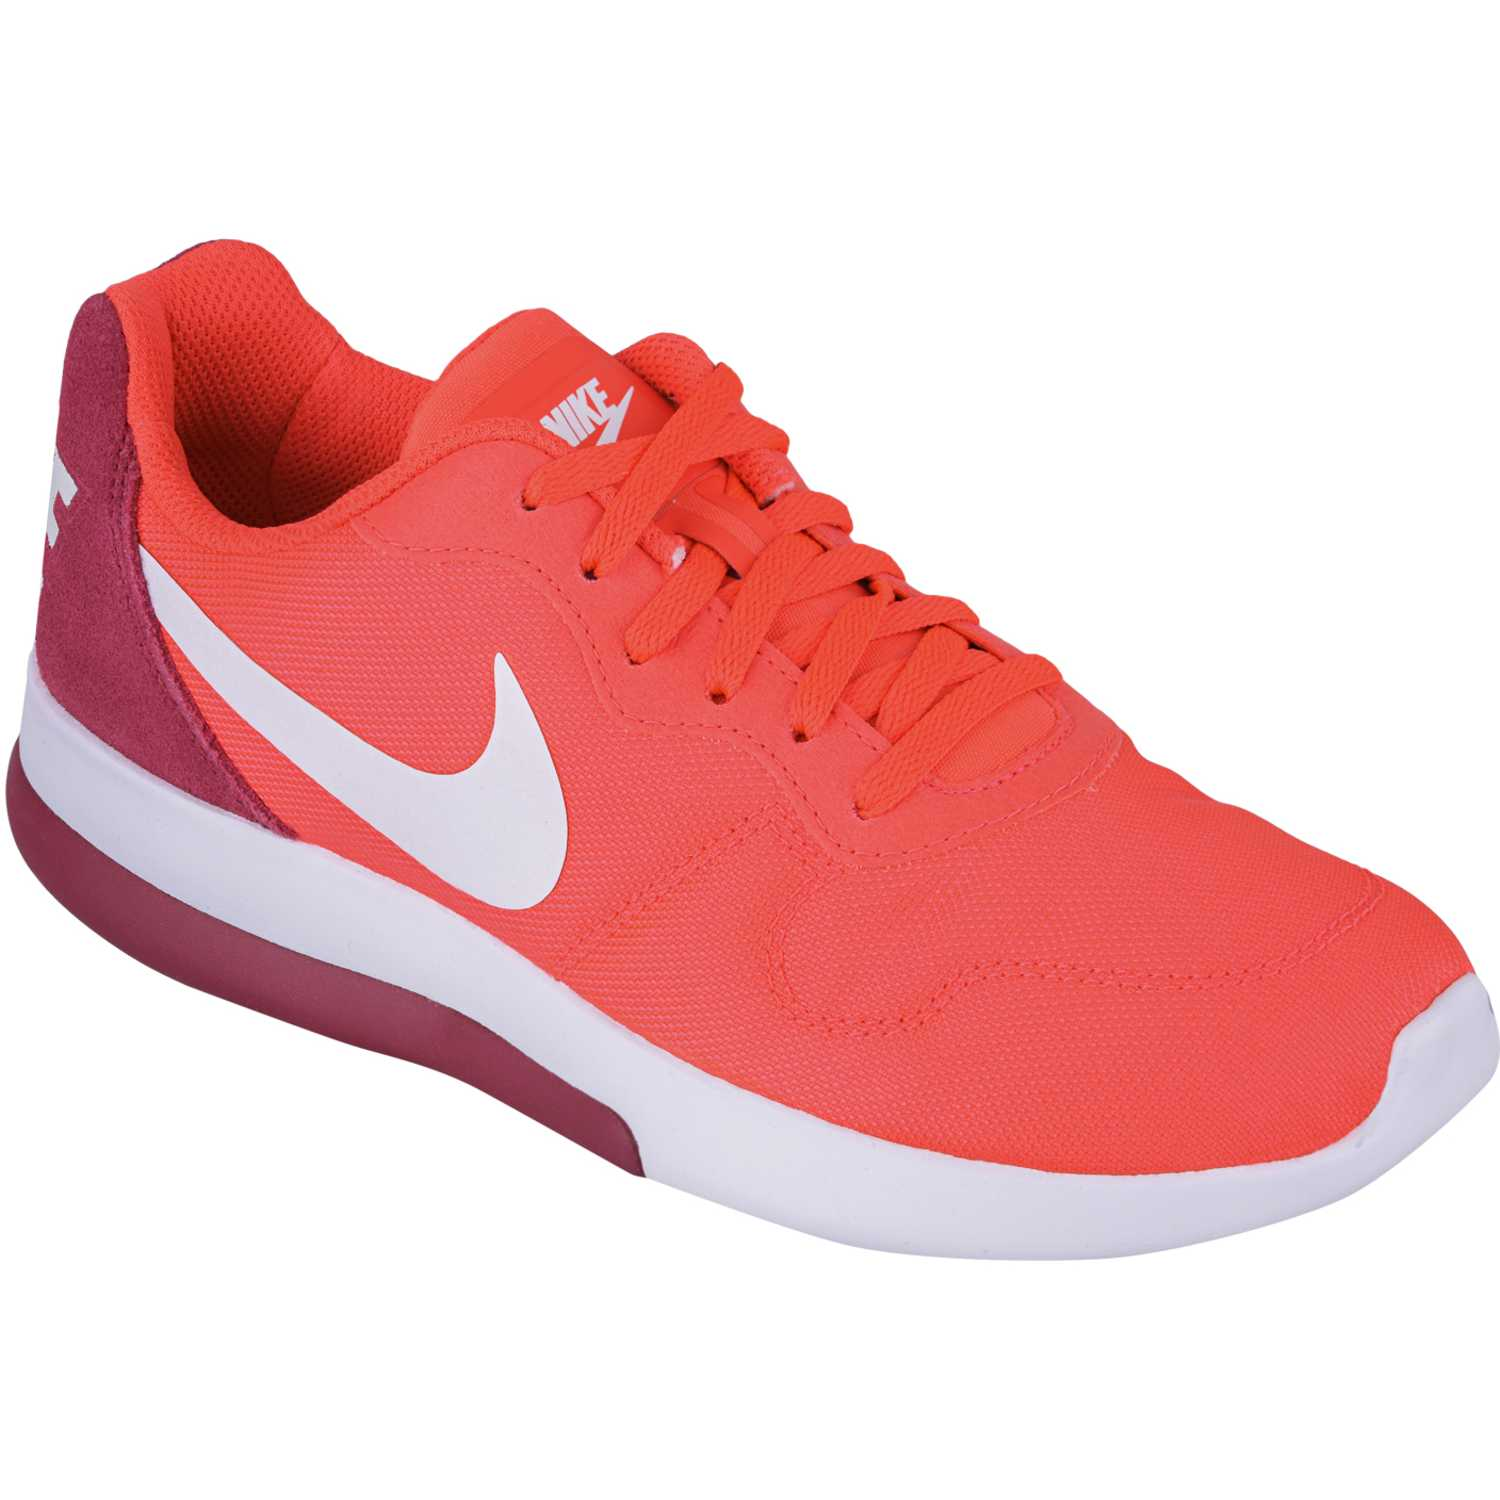 newest collection 1923a 11581 Zapatilla de Mujer Nike Coral   blanco wmns md runner 2 lw